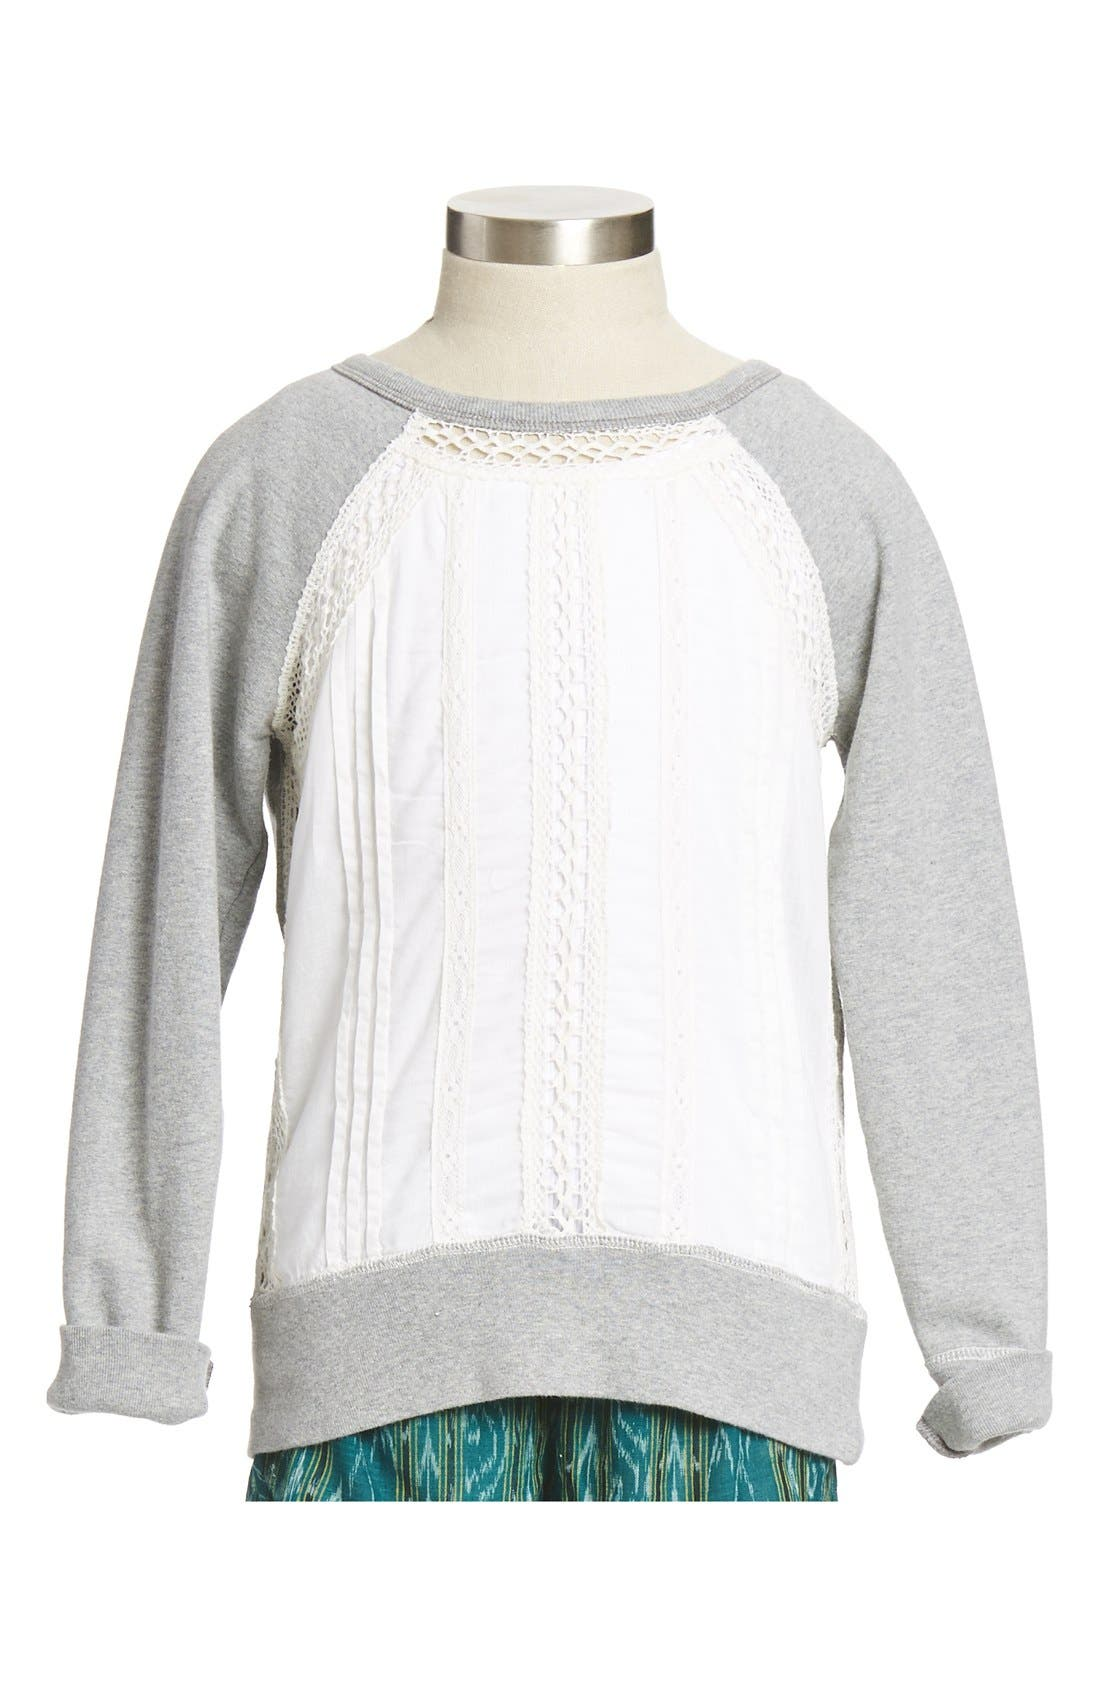 Main Image - Peek 'Sparrow' Woven Panel Crewneck Sweatshirt (Toddler Girls, Little Girls & Big Girls)